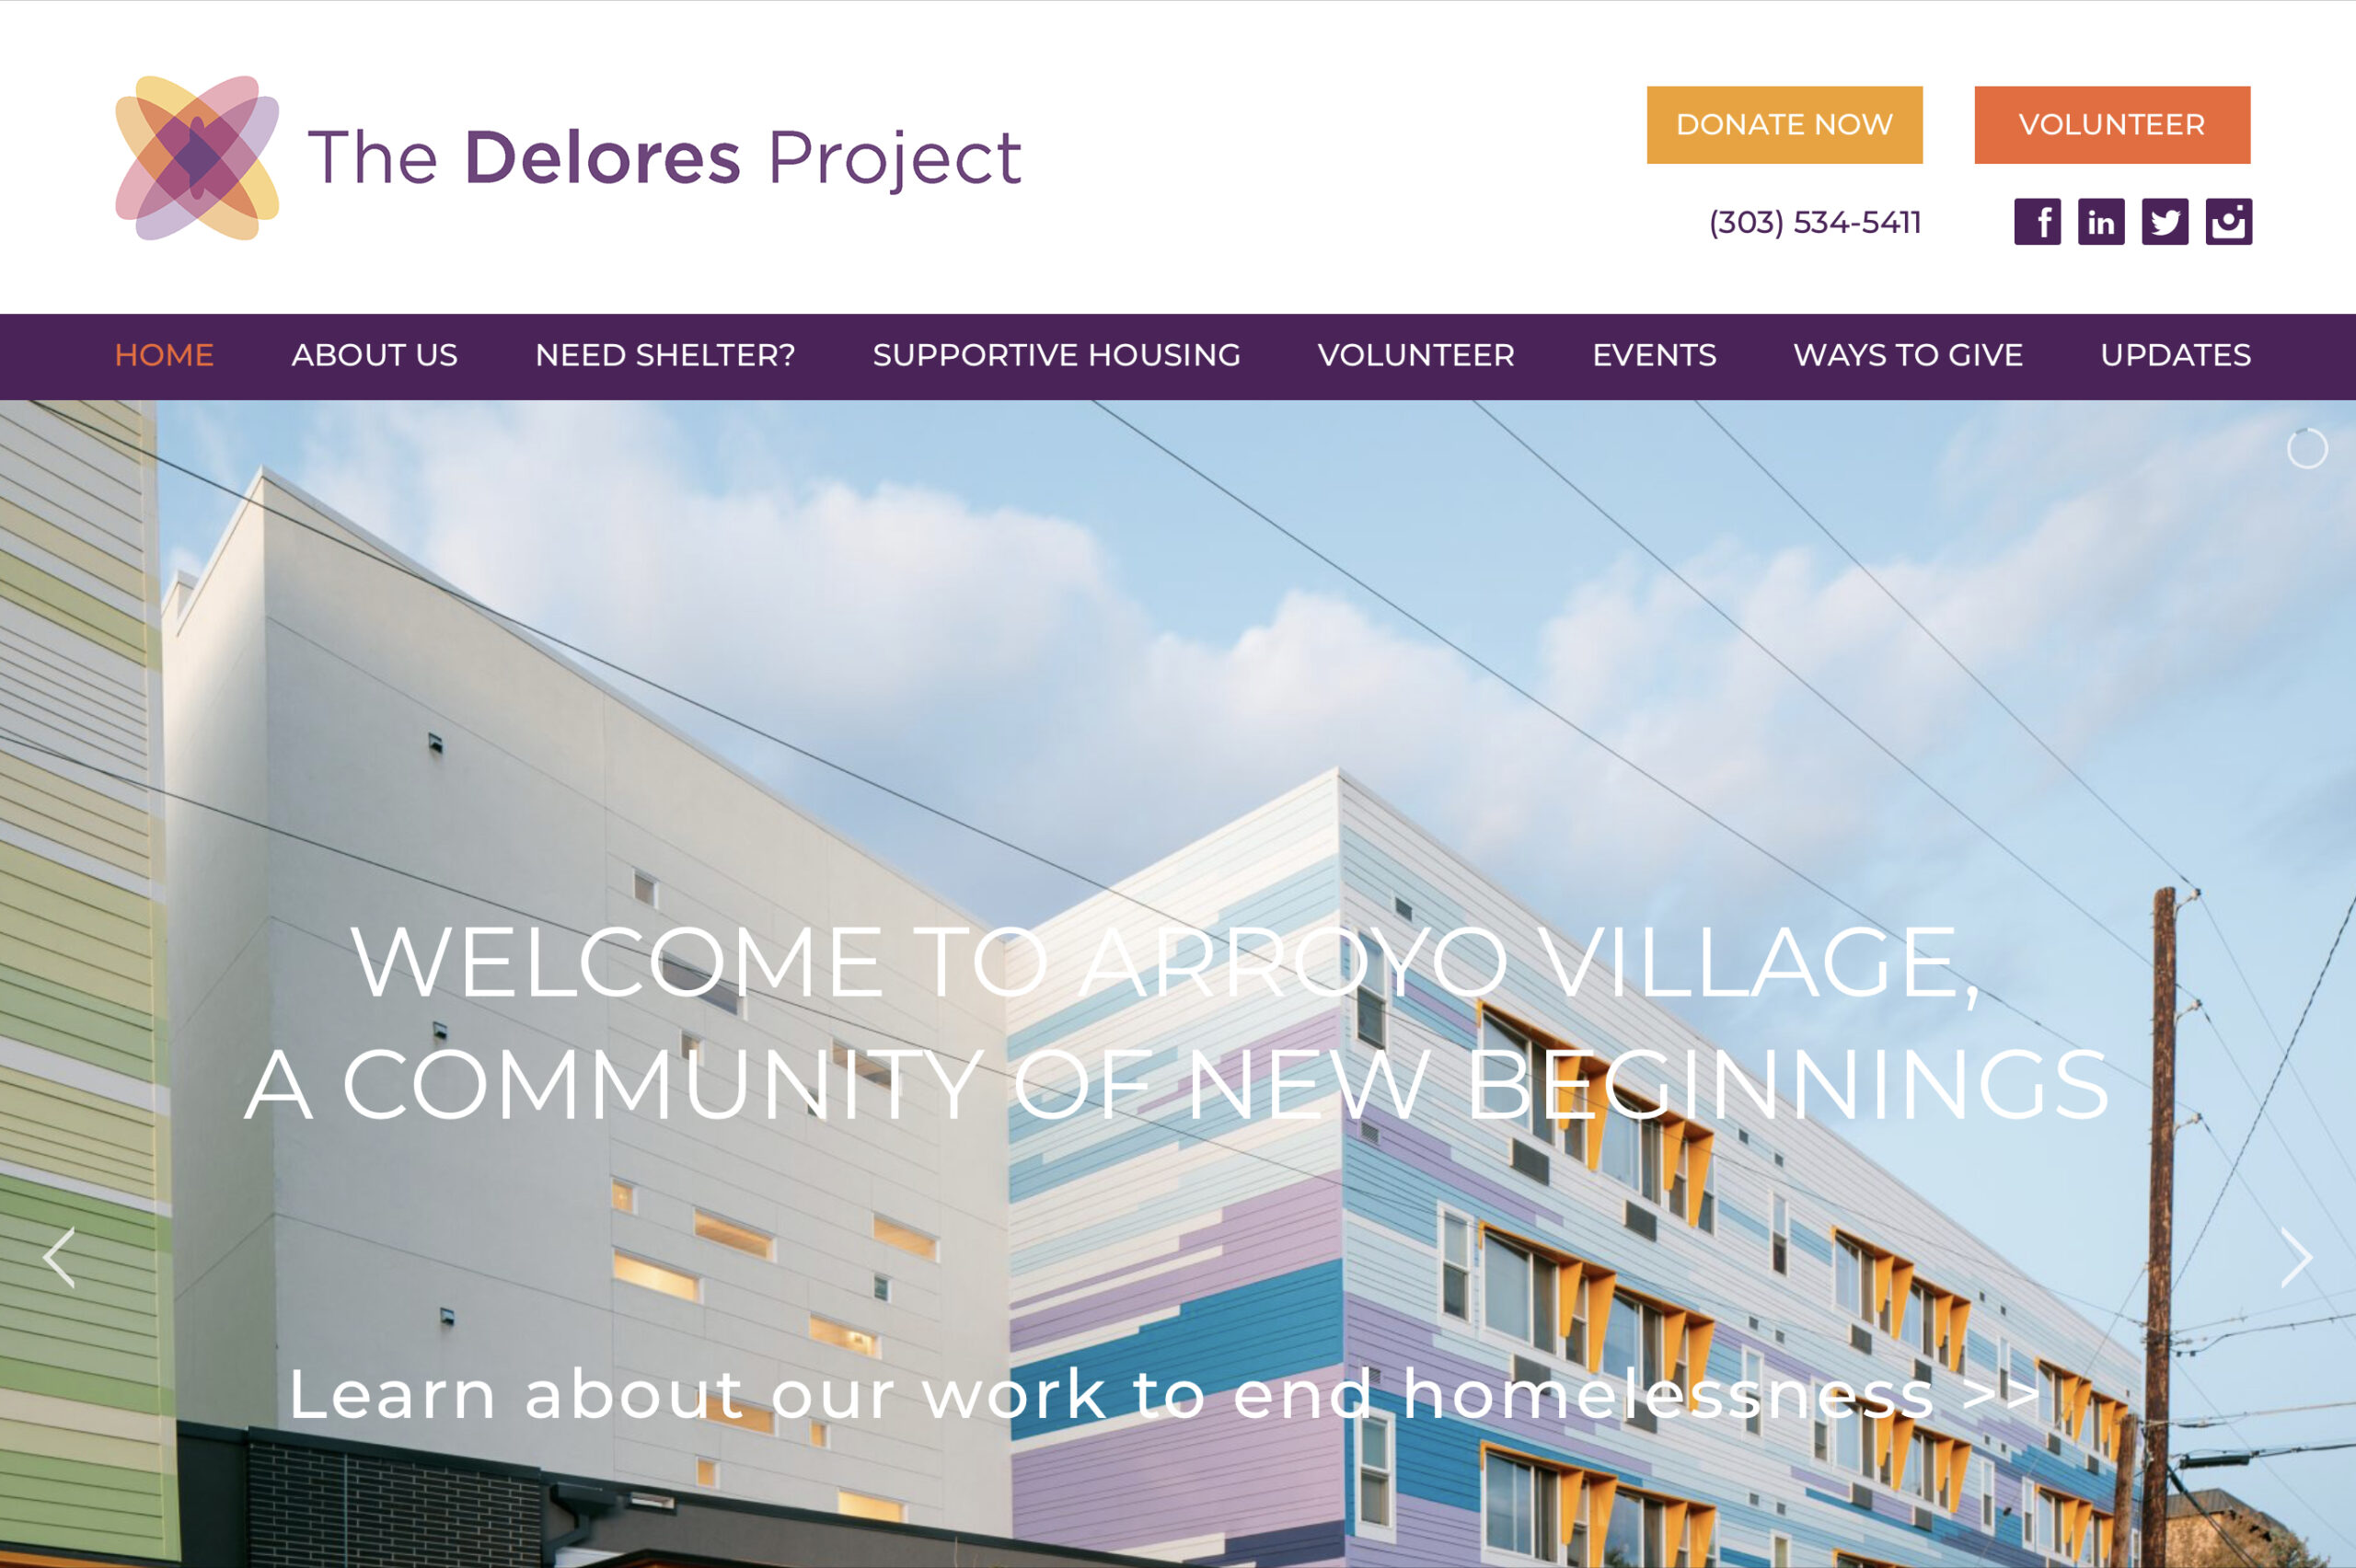 The Delores Project